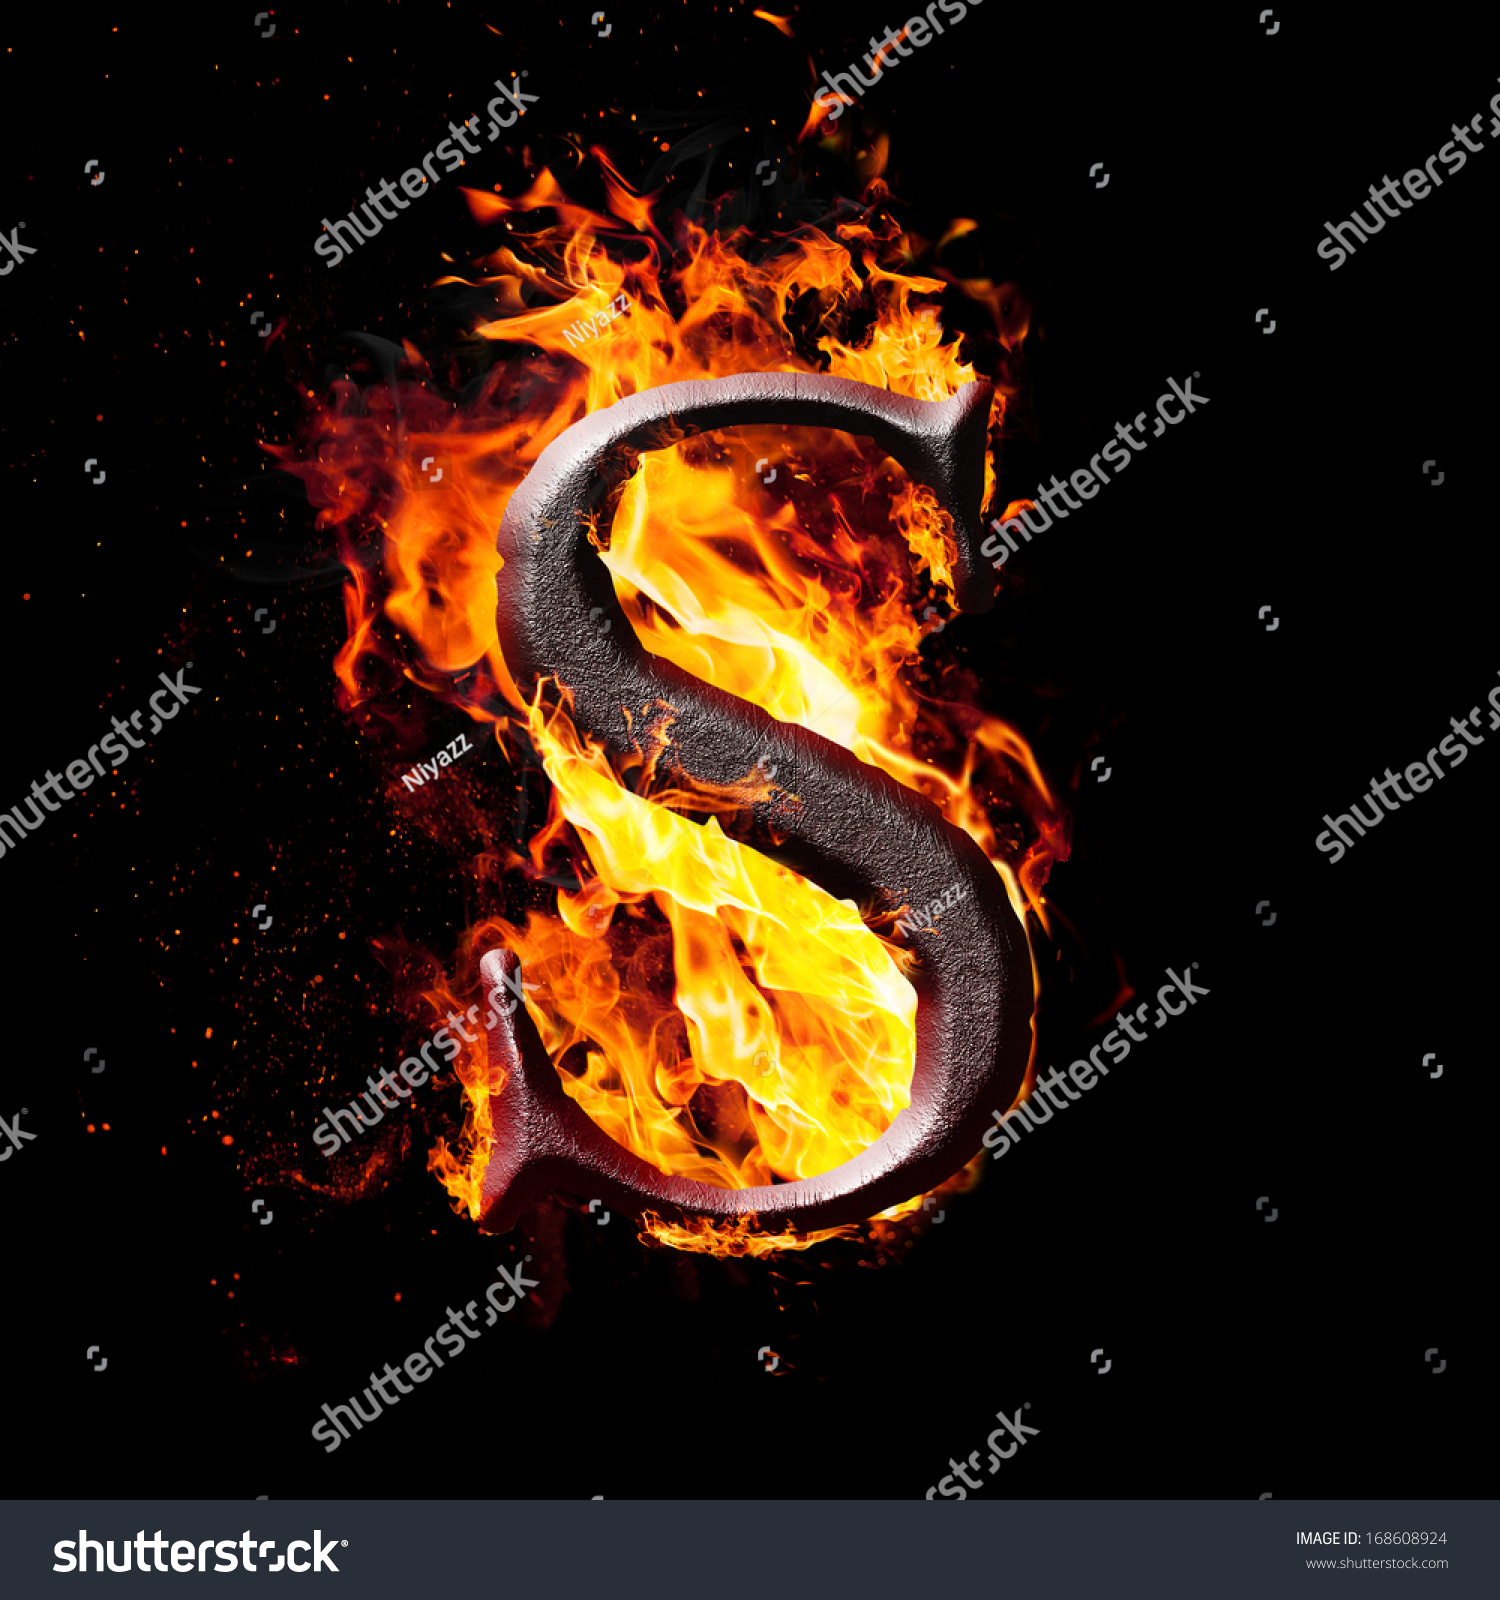 Royalty Free Stock Illustration Of Letters Symbols Fire Letter S